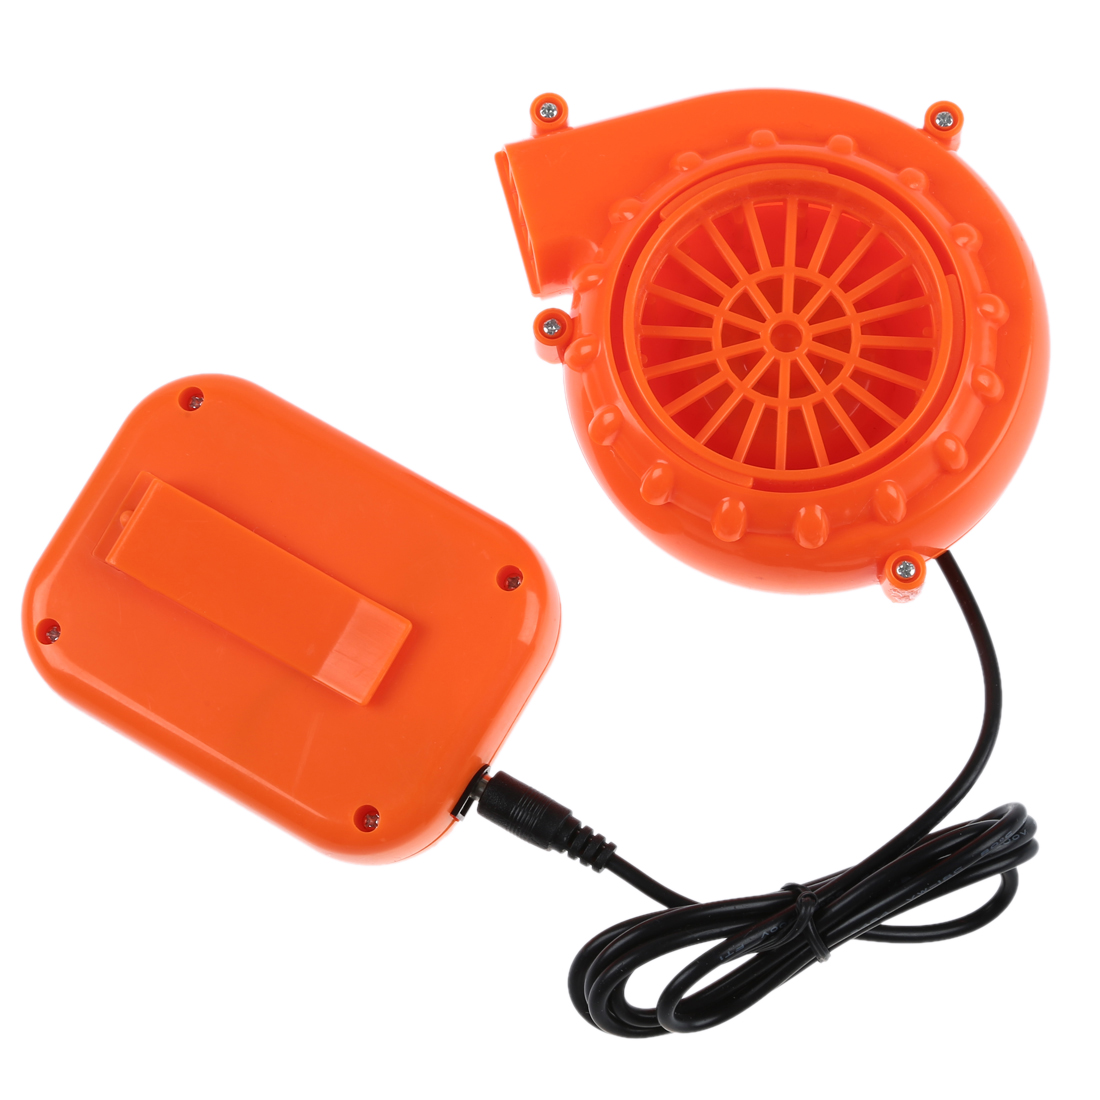 Mini Fan Blower for Mascot Head Inflatable Costume 6V Powered 4xAA Dry Battery Orange santa claus mascot costume christmas cosplay mascot costume free shipping